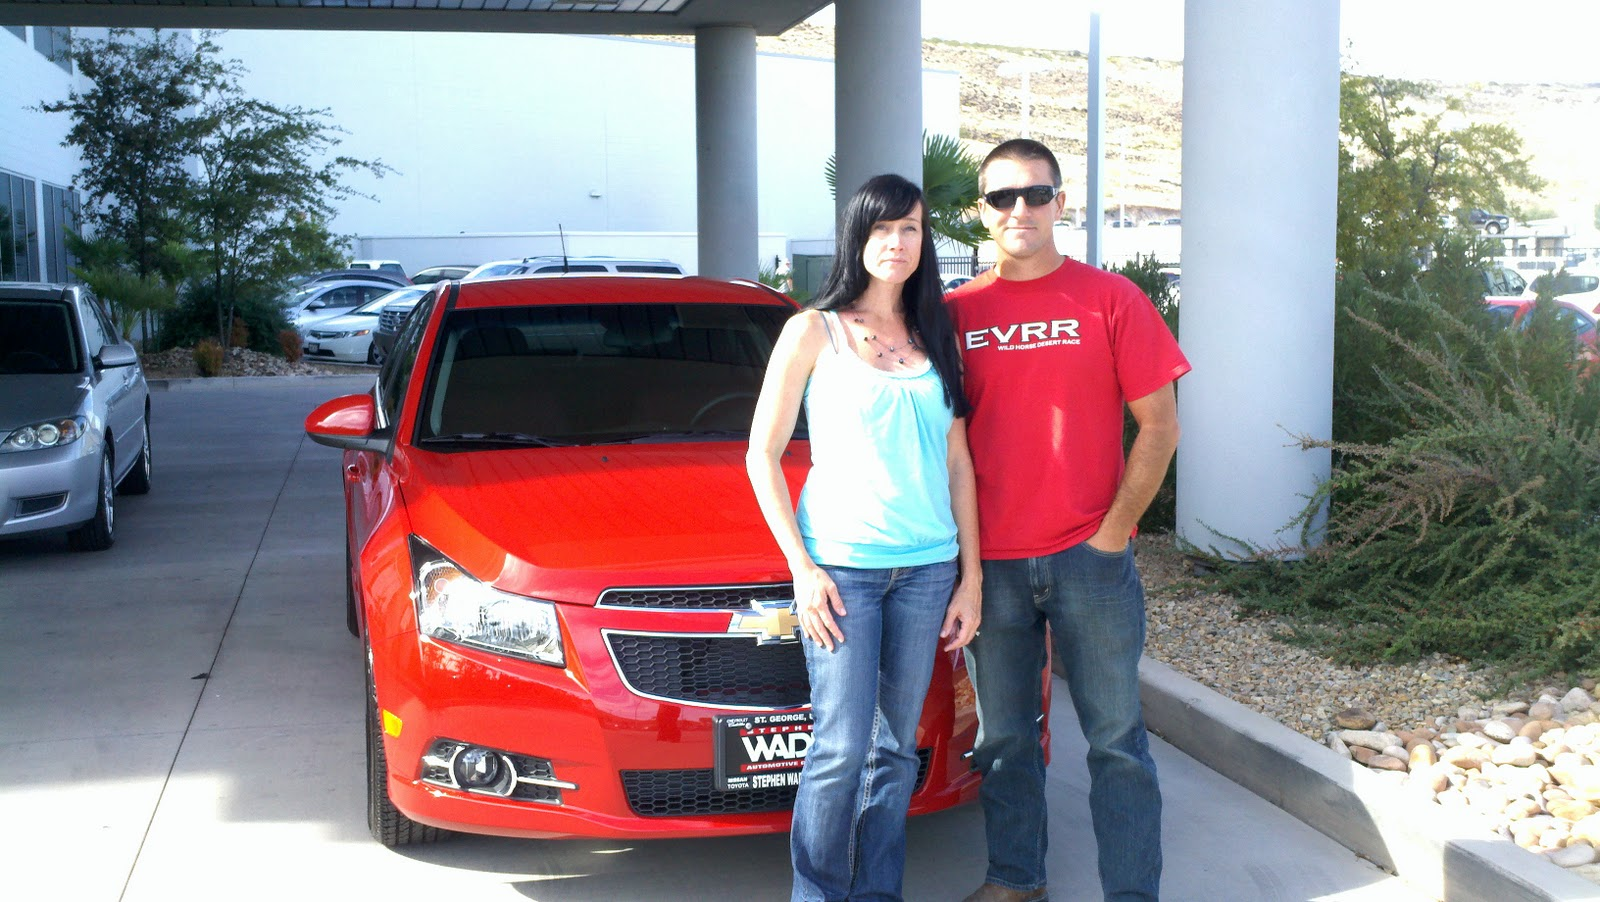 Stephen Wade Delivery Lane: Jason and Kristine from ...